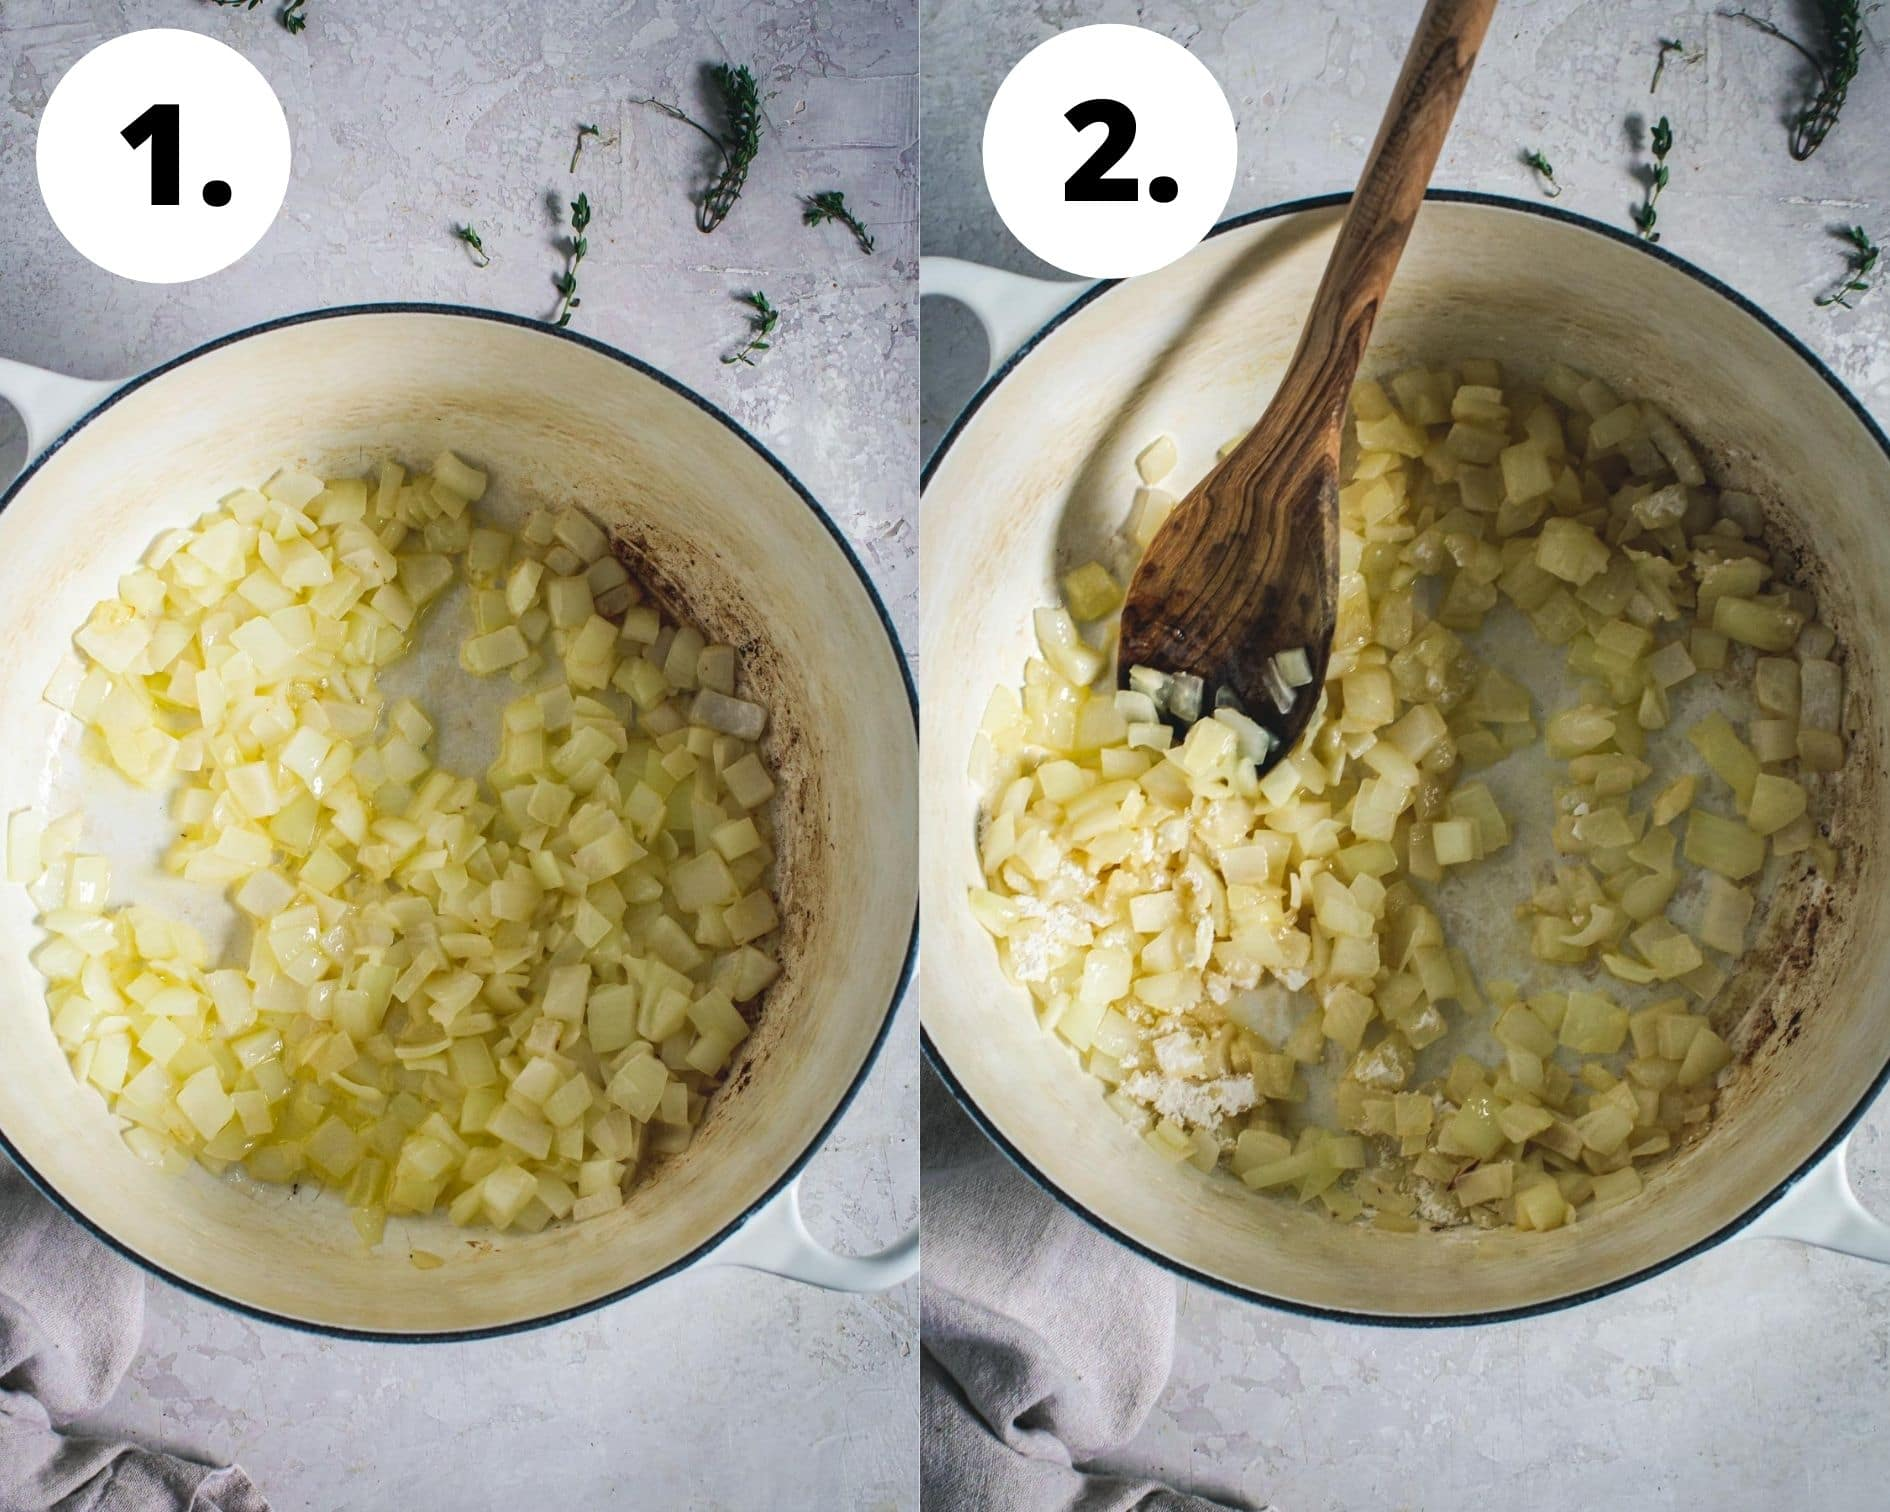 Best creamed corn process steps 1 and 2.